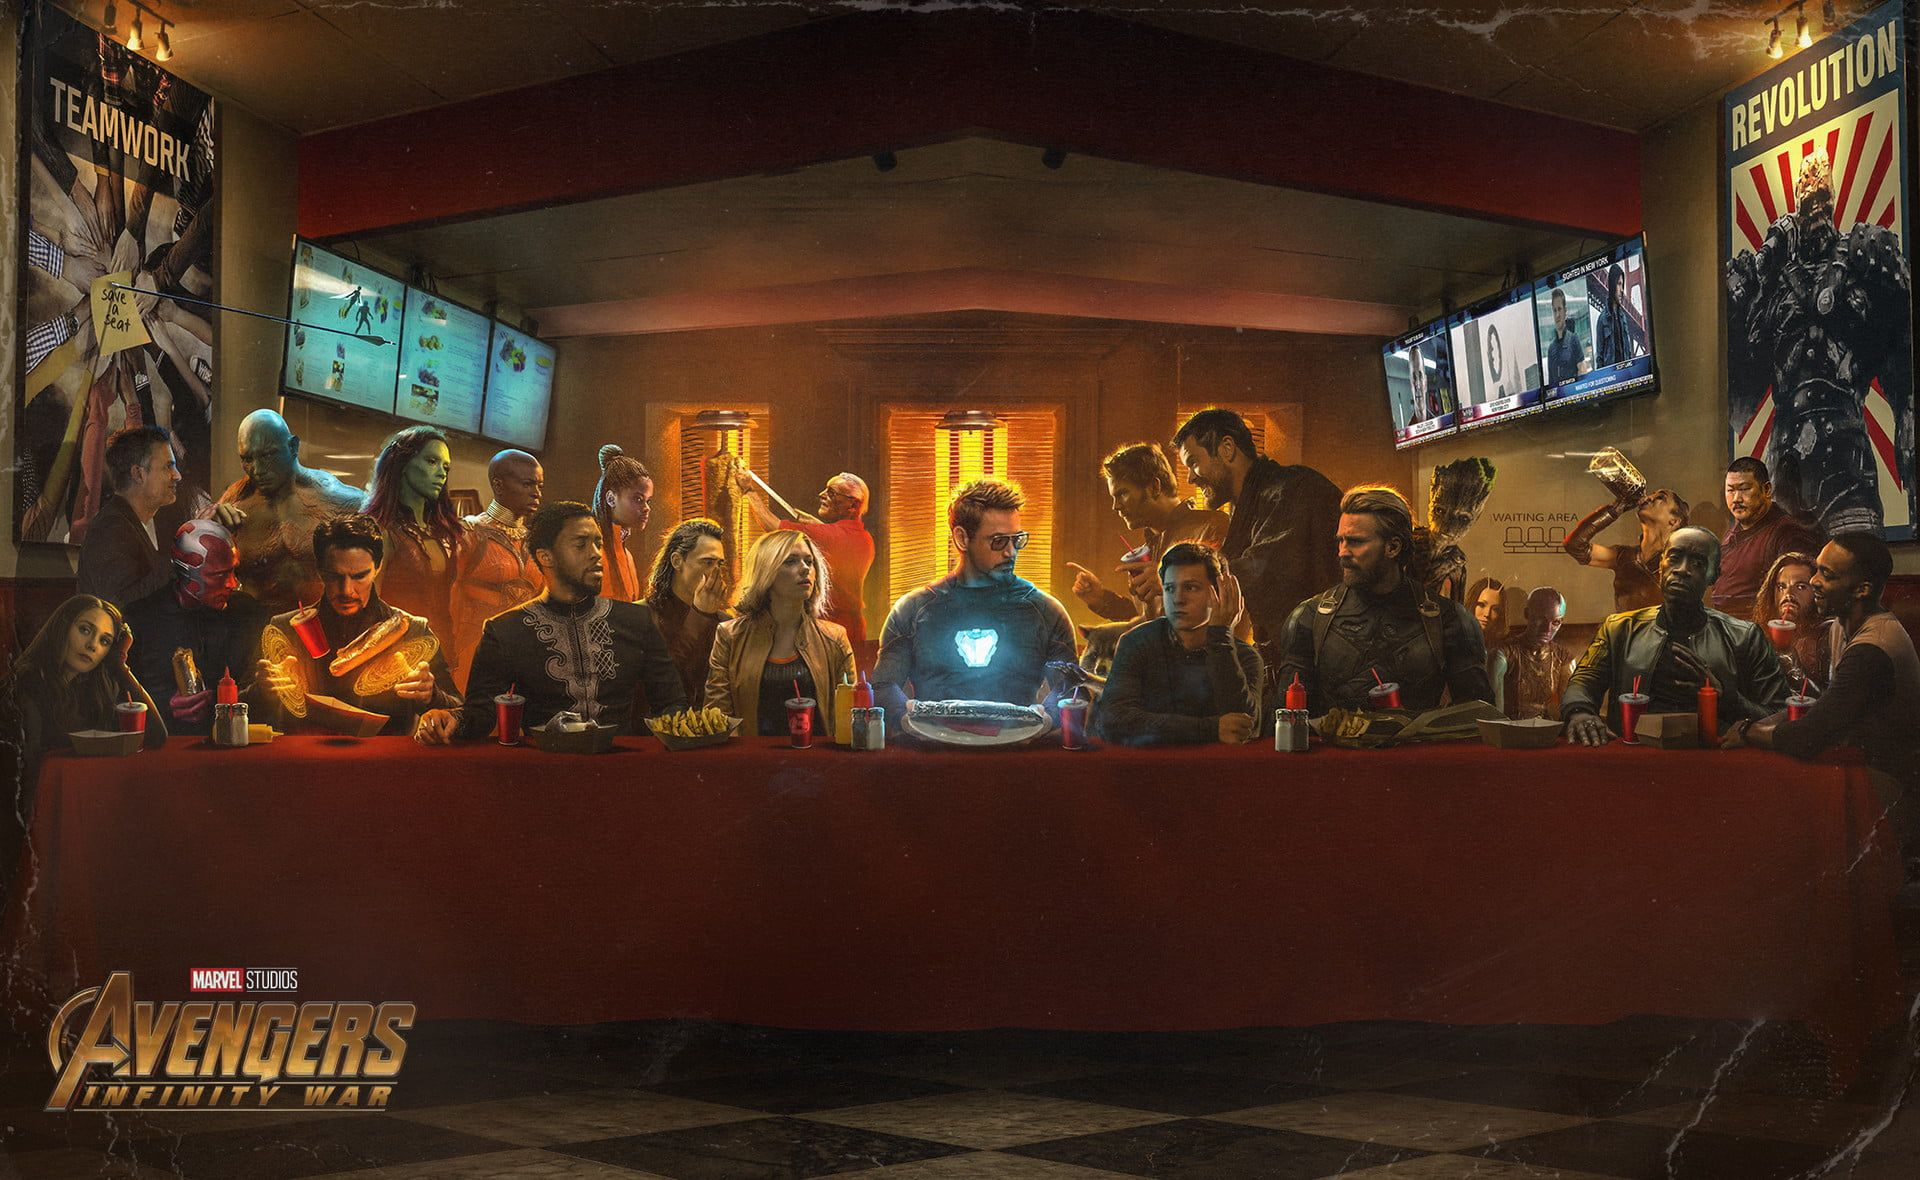 Marvel Avengers Infinity War poster Avengers Last Supper wallpaper The Avengers Iron Man Black Widow Black Panther Doctor Strange Drax the Destroyer Captain America Stan...